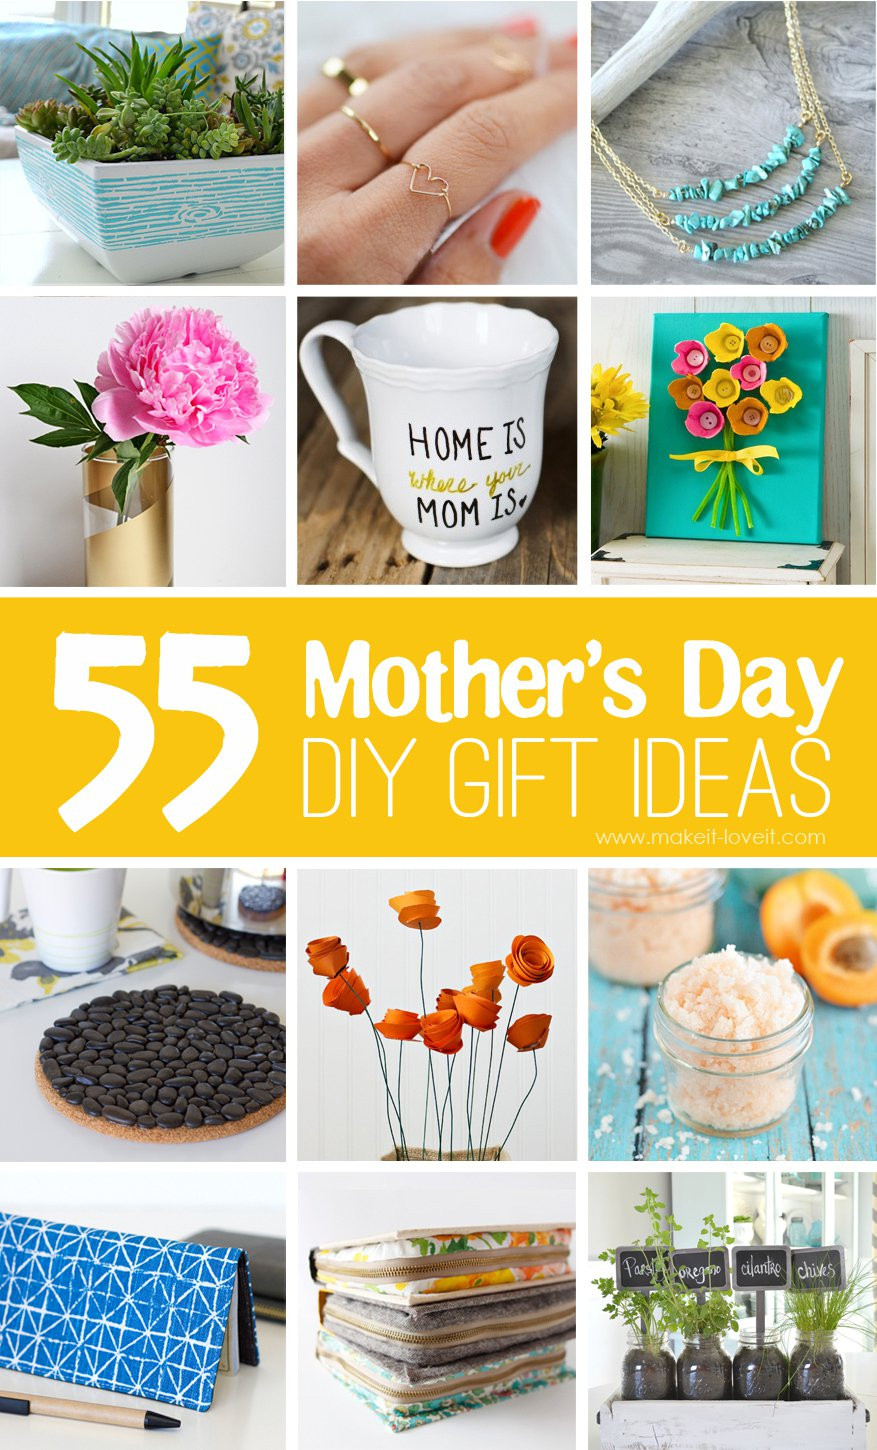 Best ideas about DIY Mother Day Gifts . Save or Pin 40 Homemade Mother s Day Gift Ideas Now.